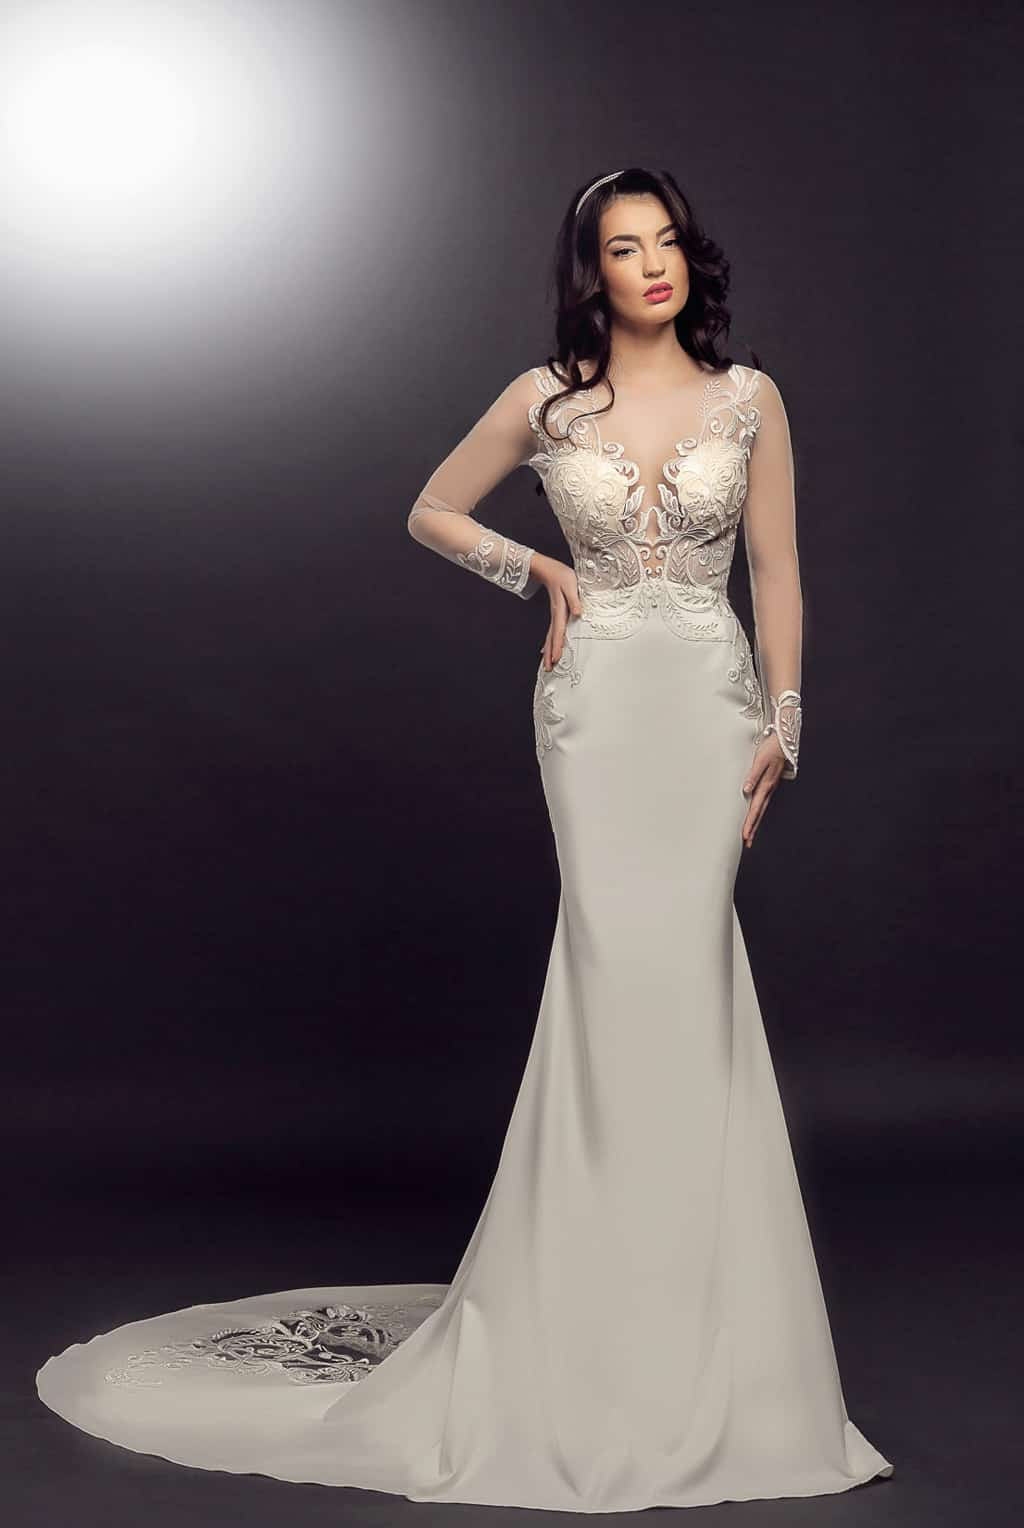 Pacifica Model - Colectia Dreams - Adora Sposa